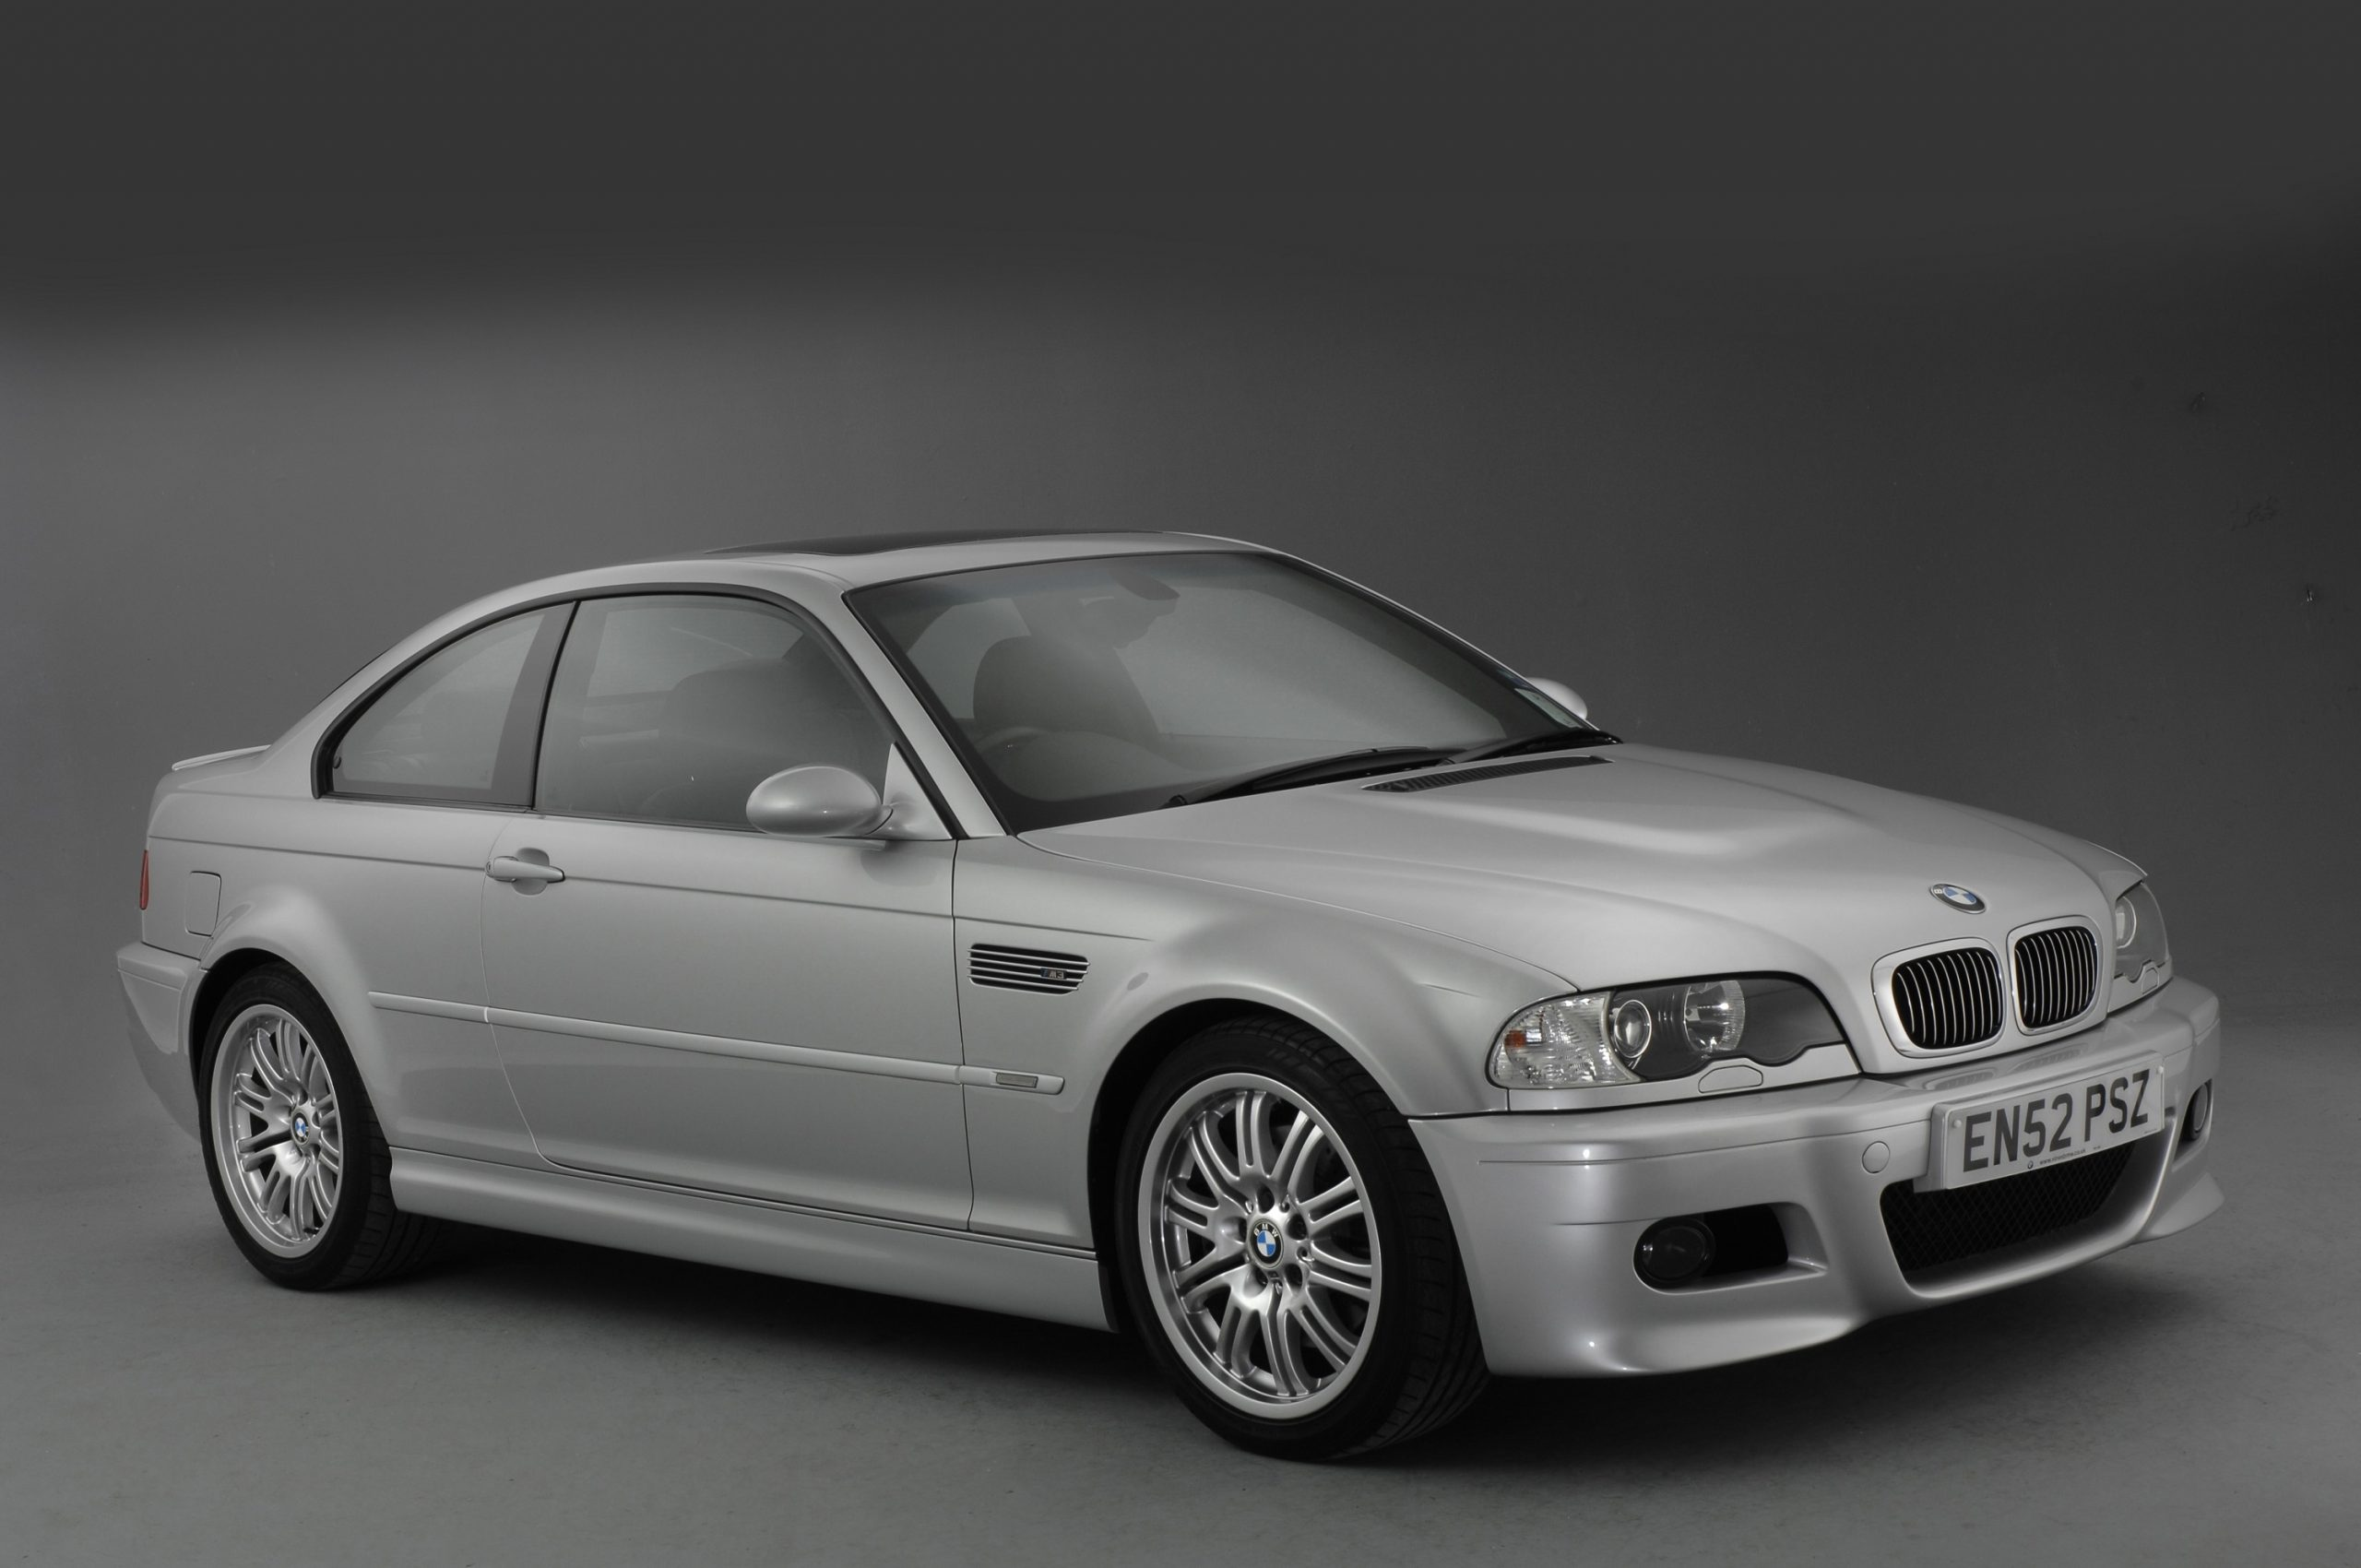 A silver E46 BMW M3 shot from the front 3/4 in the studio